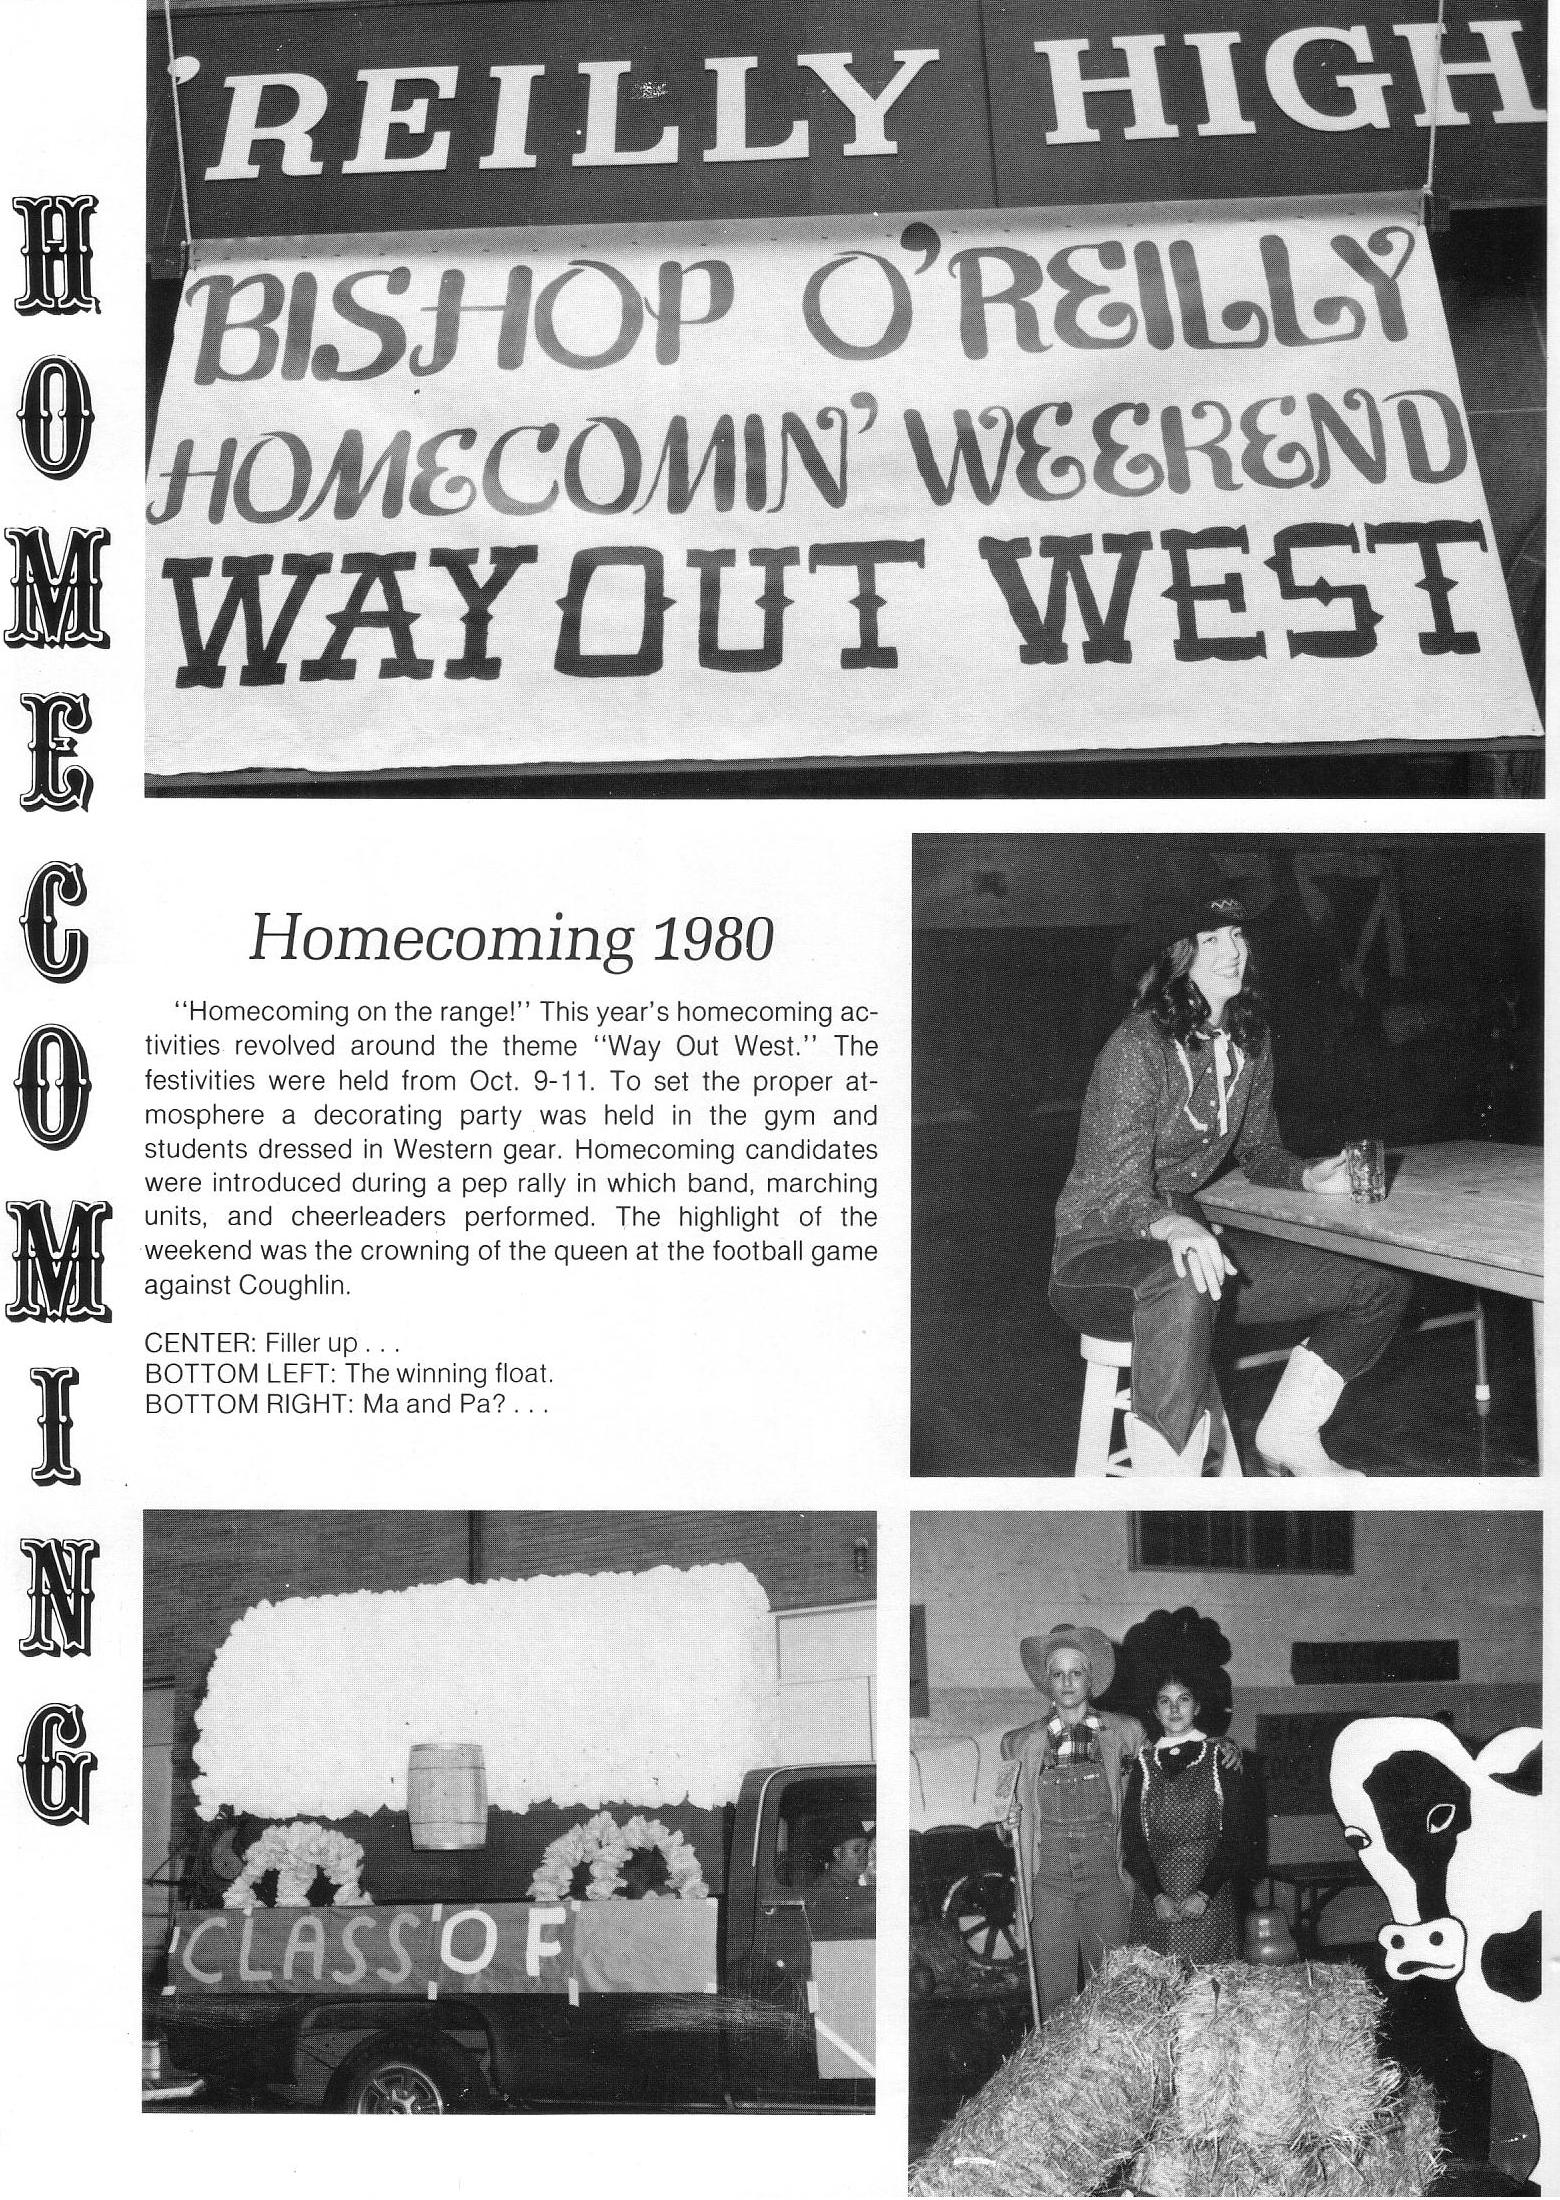 zzhomecoming80b.jpg